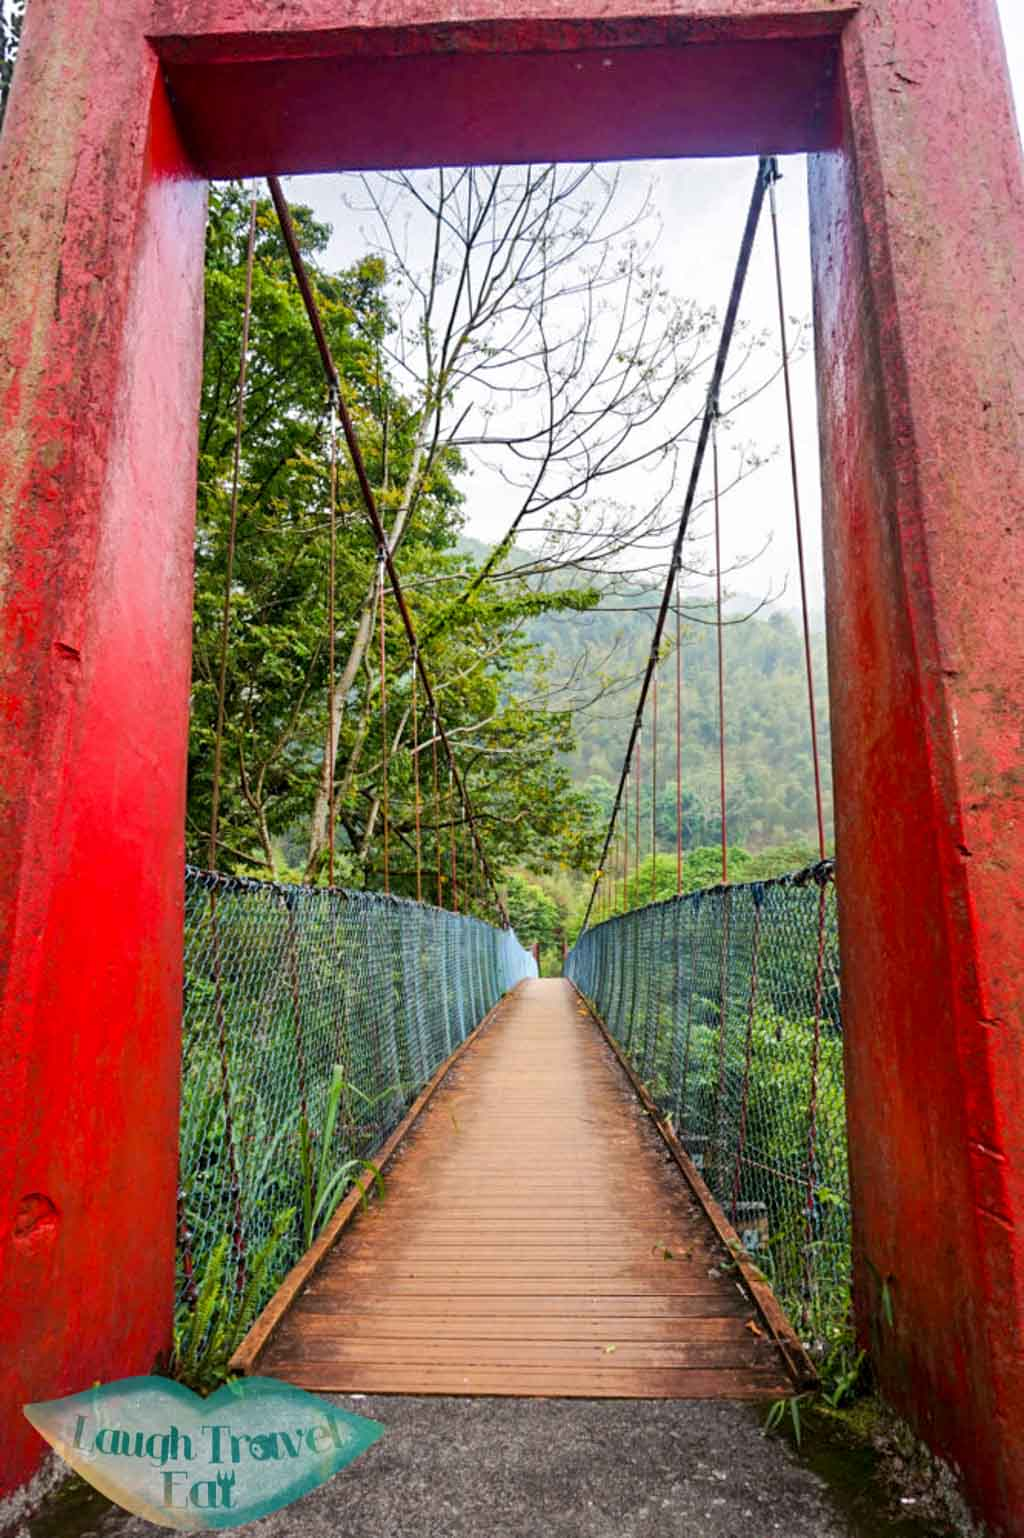 Hanging bridge in Dasyueshan National Forest Recreational Area, Taichung - Laugh Travel Eat